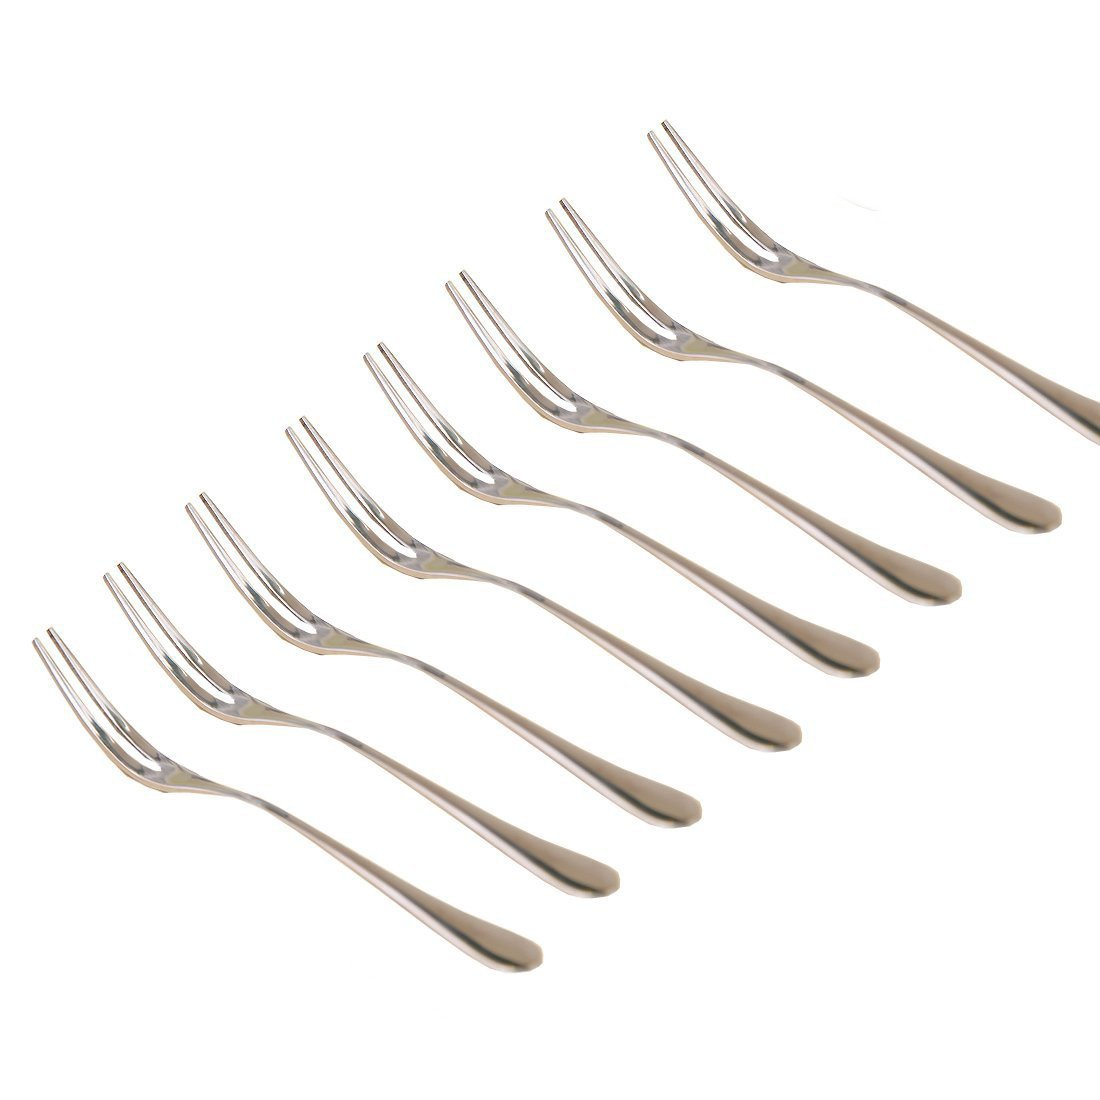 Bistro Appetizer Cocktail and Fruit Forks - Stainless Steel (12) deals4you